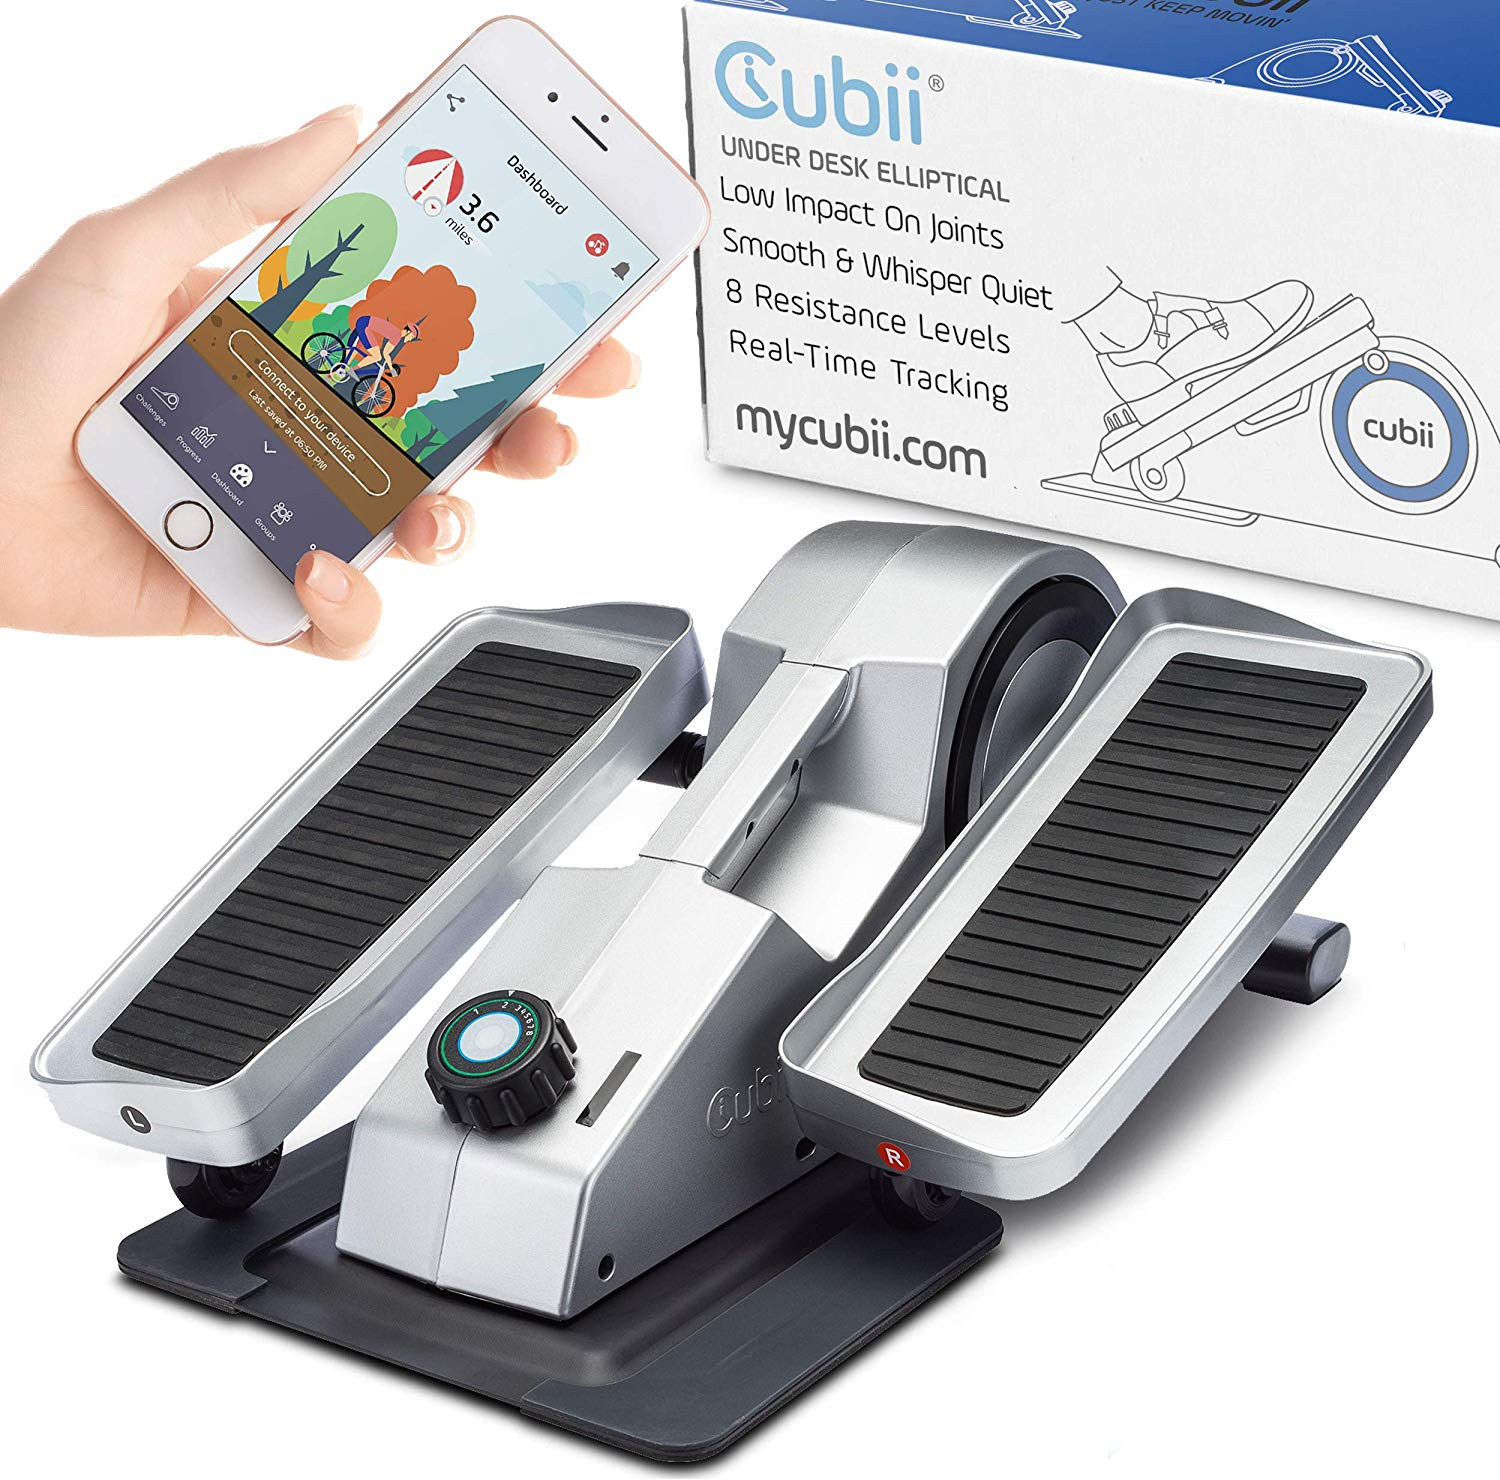 Cubii Elliptical - Pro Model With Bluetooth and Fitness App